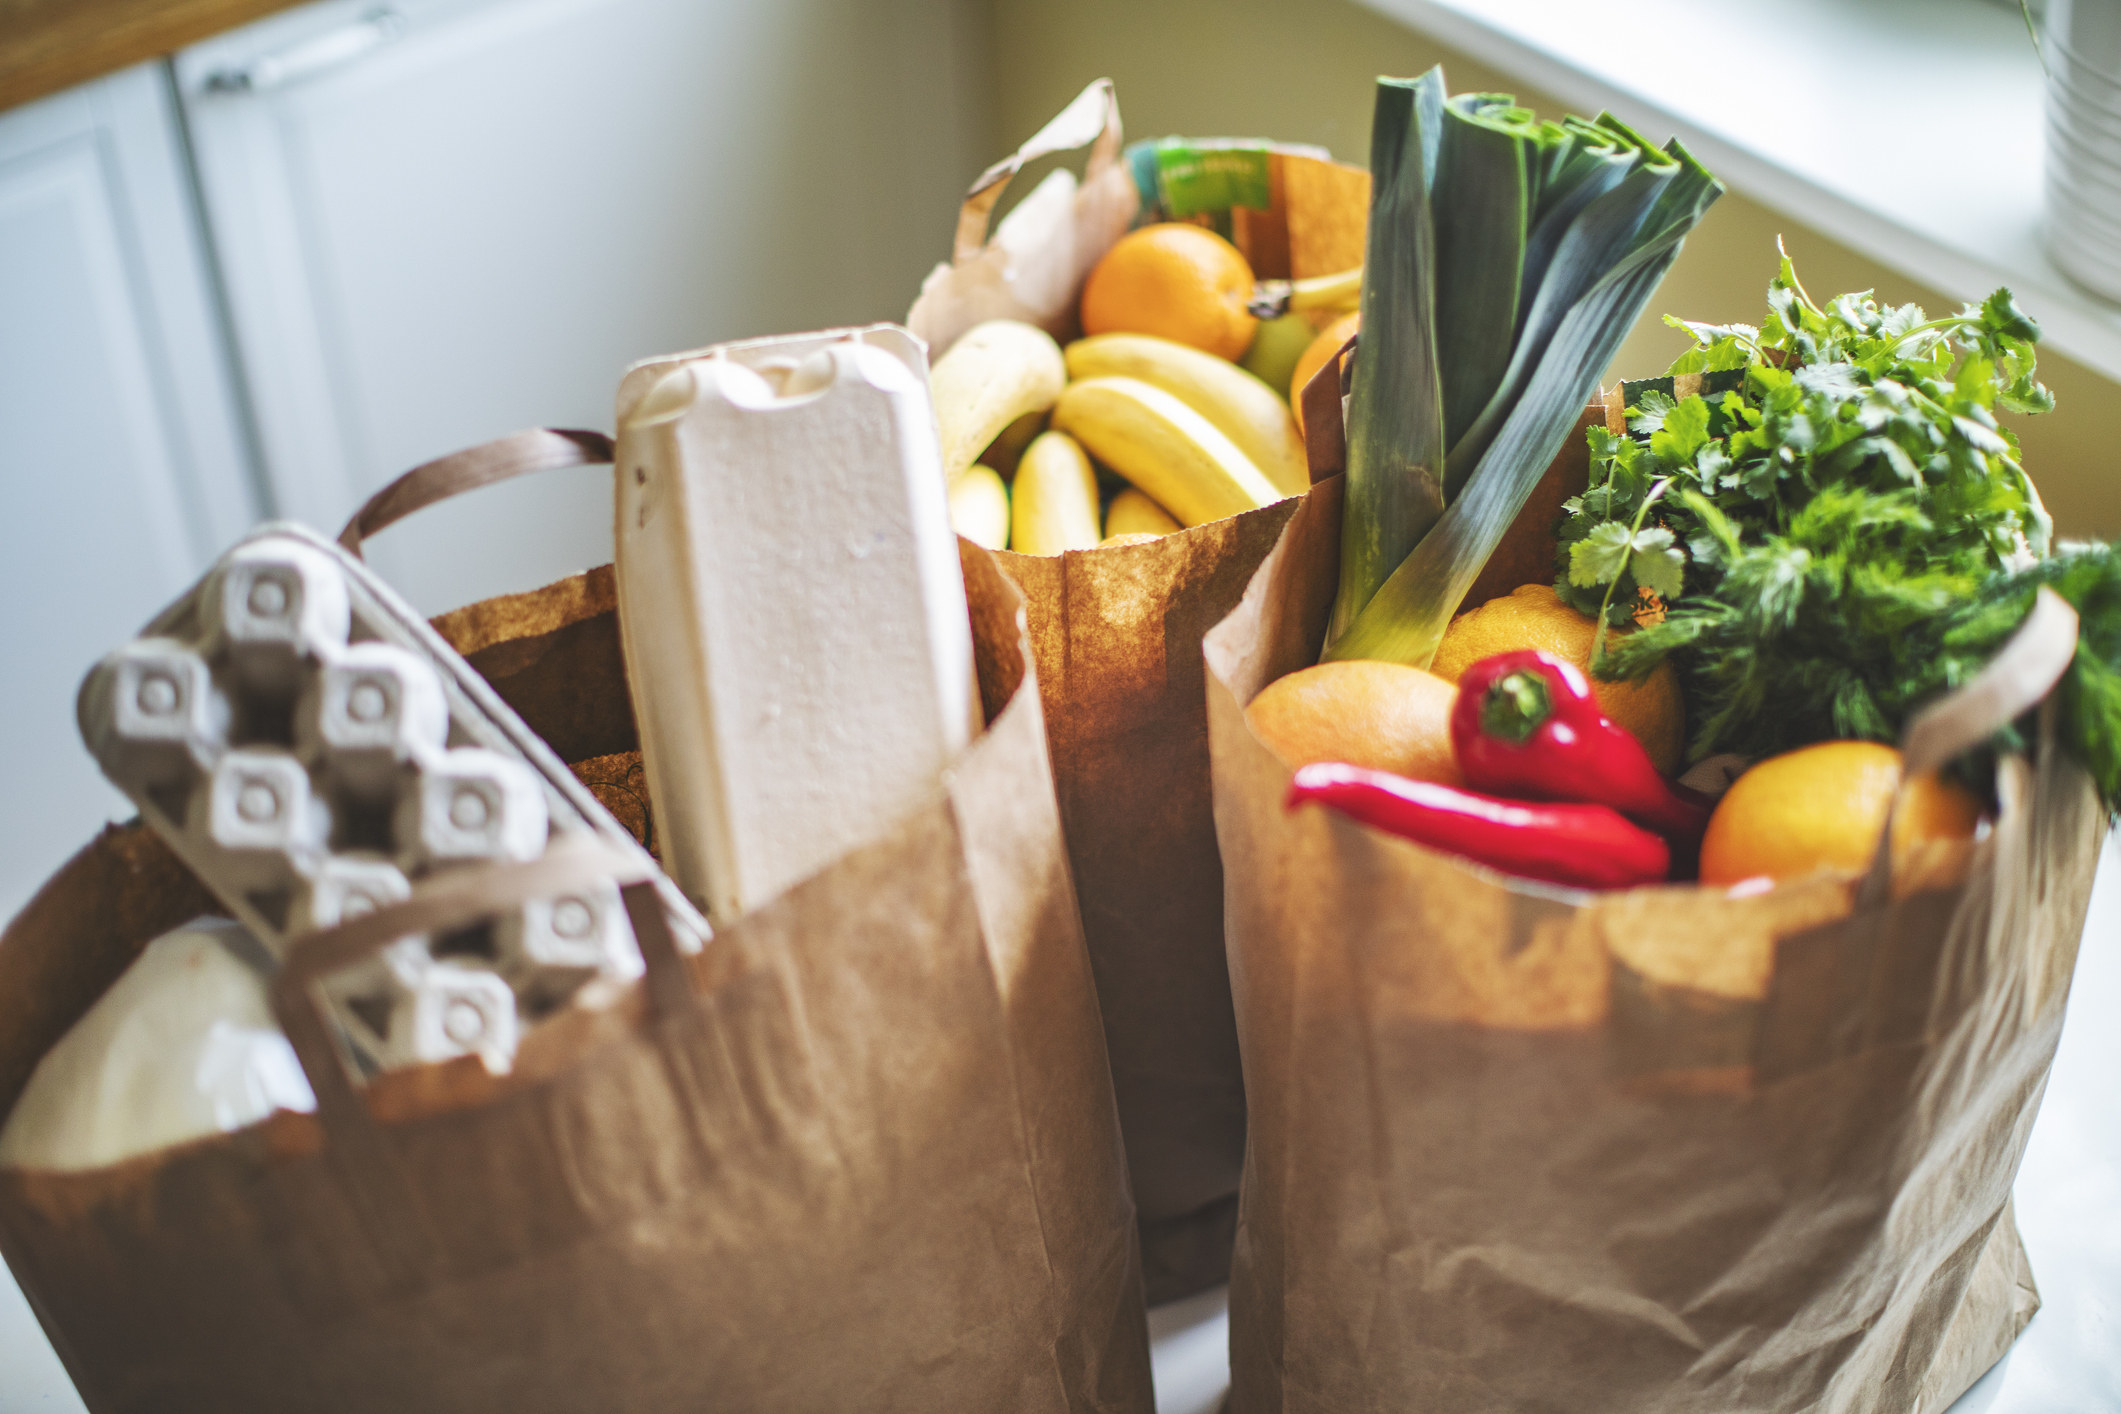 Grocery bags full of produce and eggs.